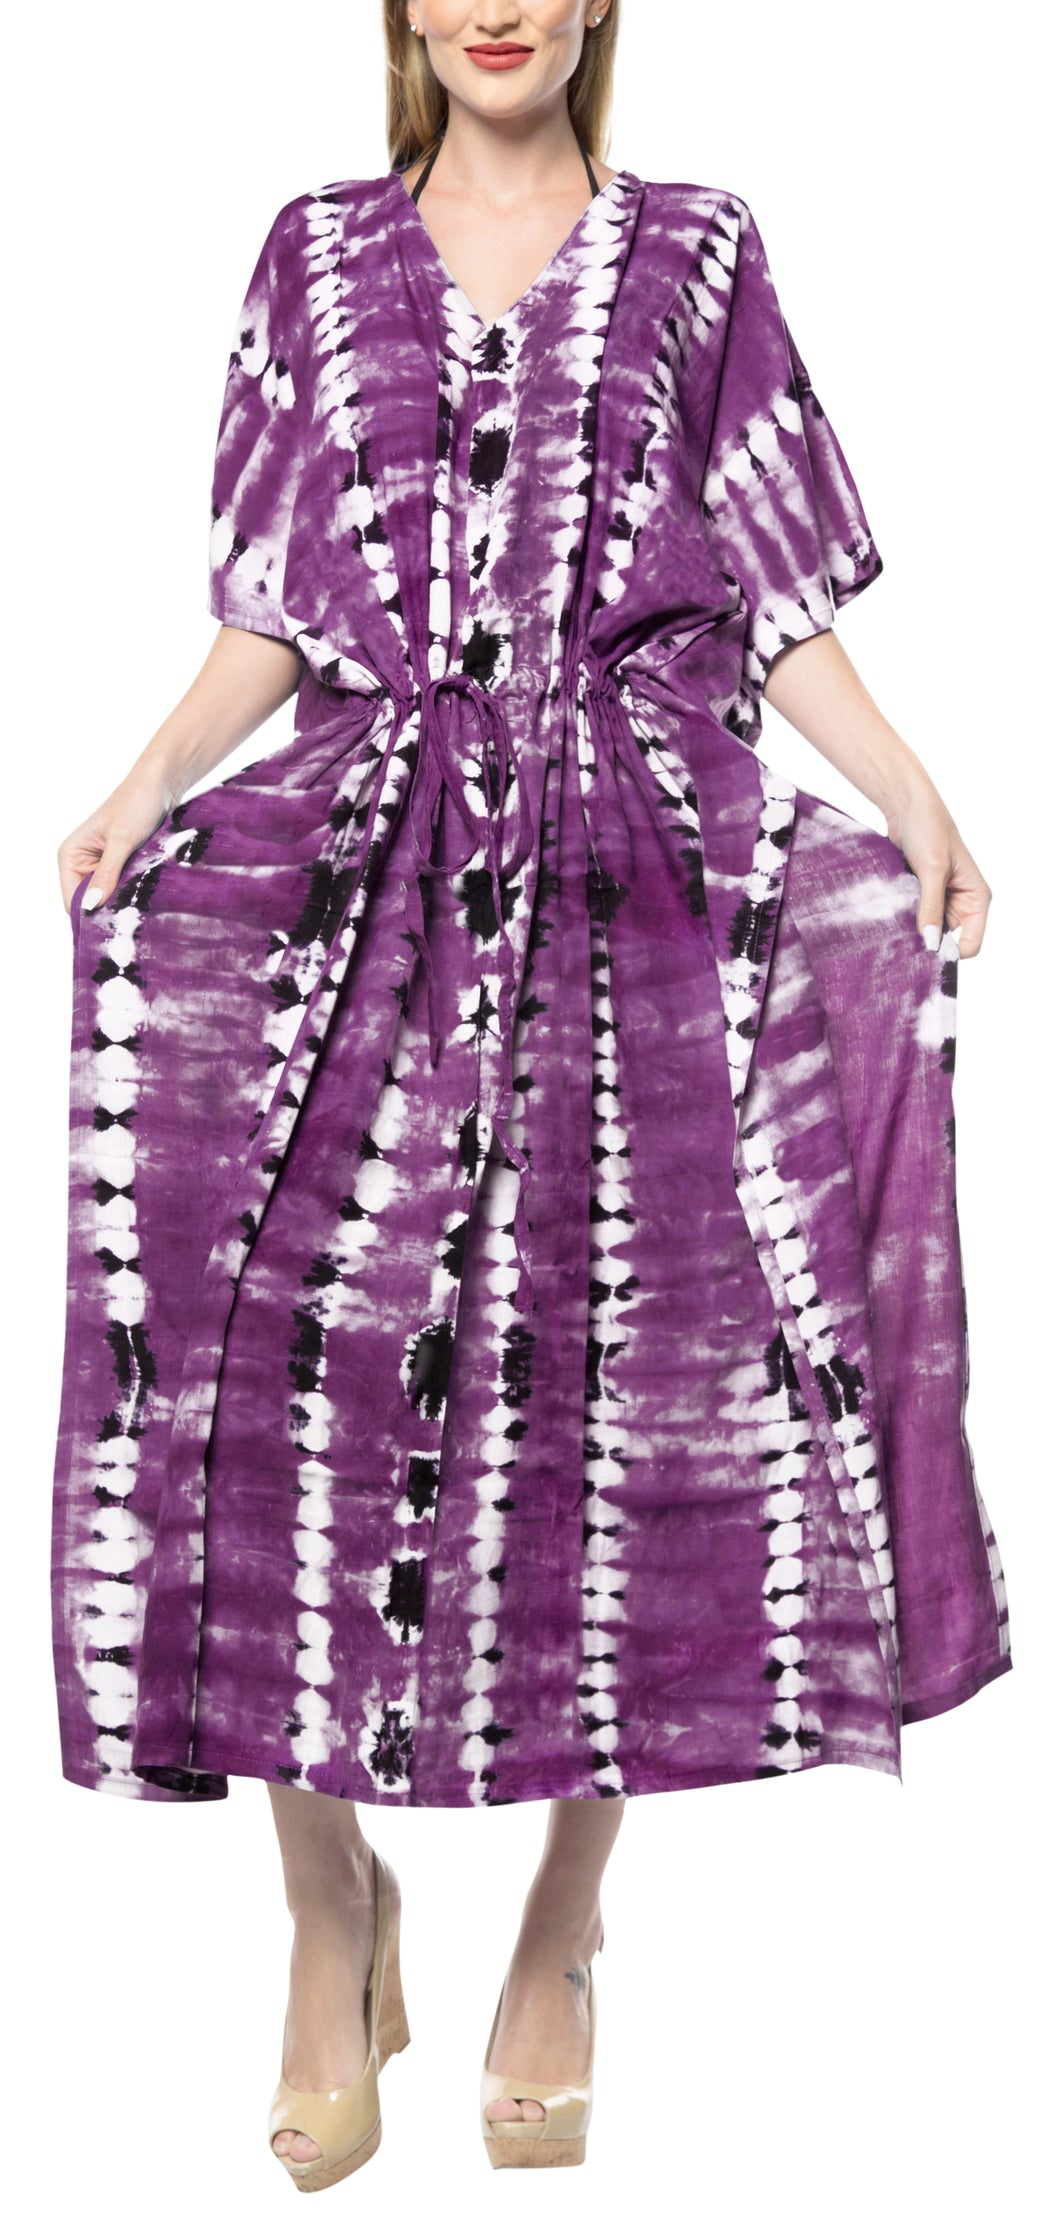 LA LEELA Rayon Tie_Dye Caftan Beach Dress Women Purple_1369 OSFM 14-32W